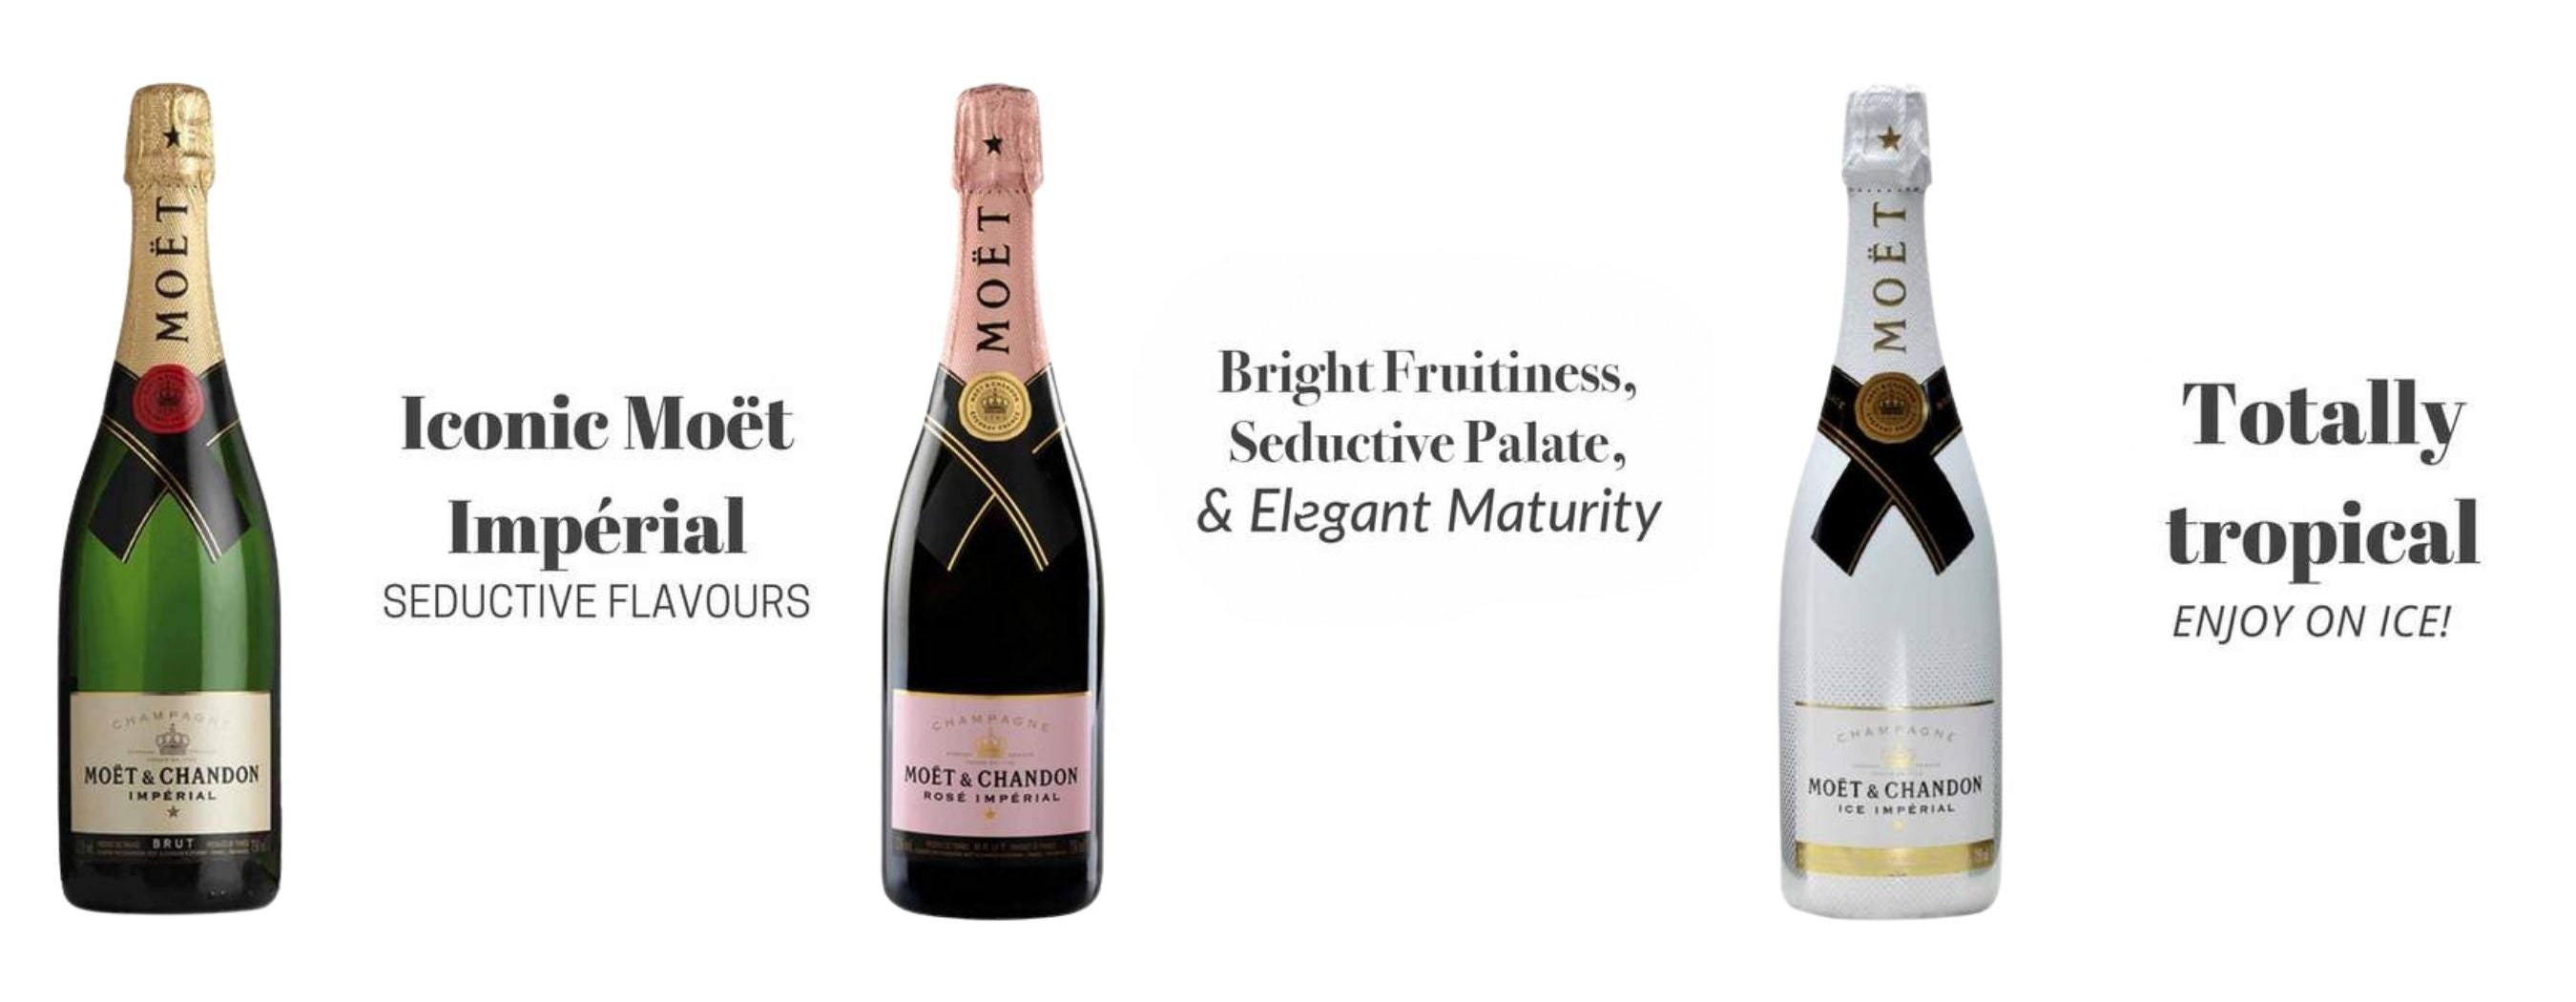 shop moet chandon brut imperial rose imperial ice imperial champagne at best prices online in philippines